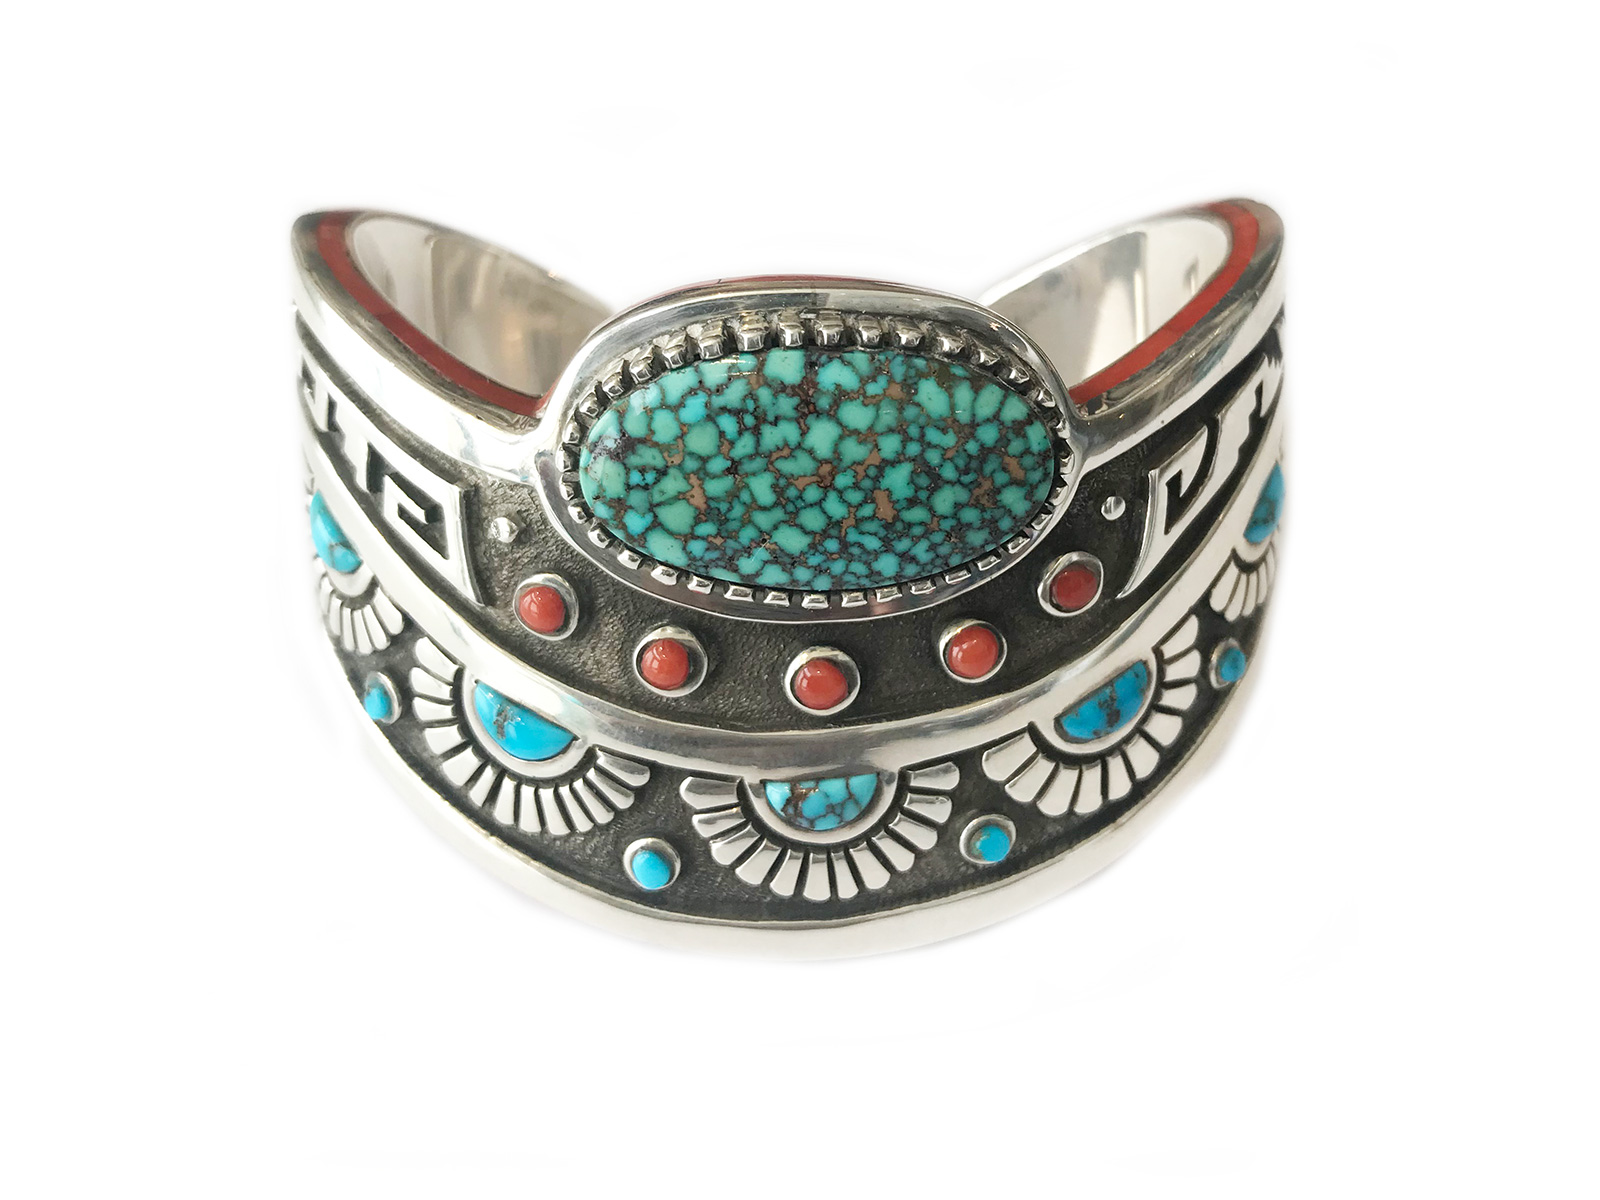 65a1c457dcf3 Indian Mountain Turquoise Coral Curved Cuff handmade by Michael Perry.